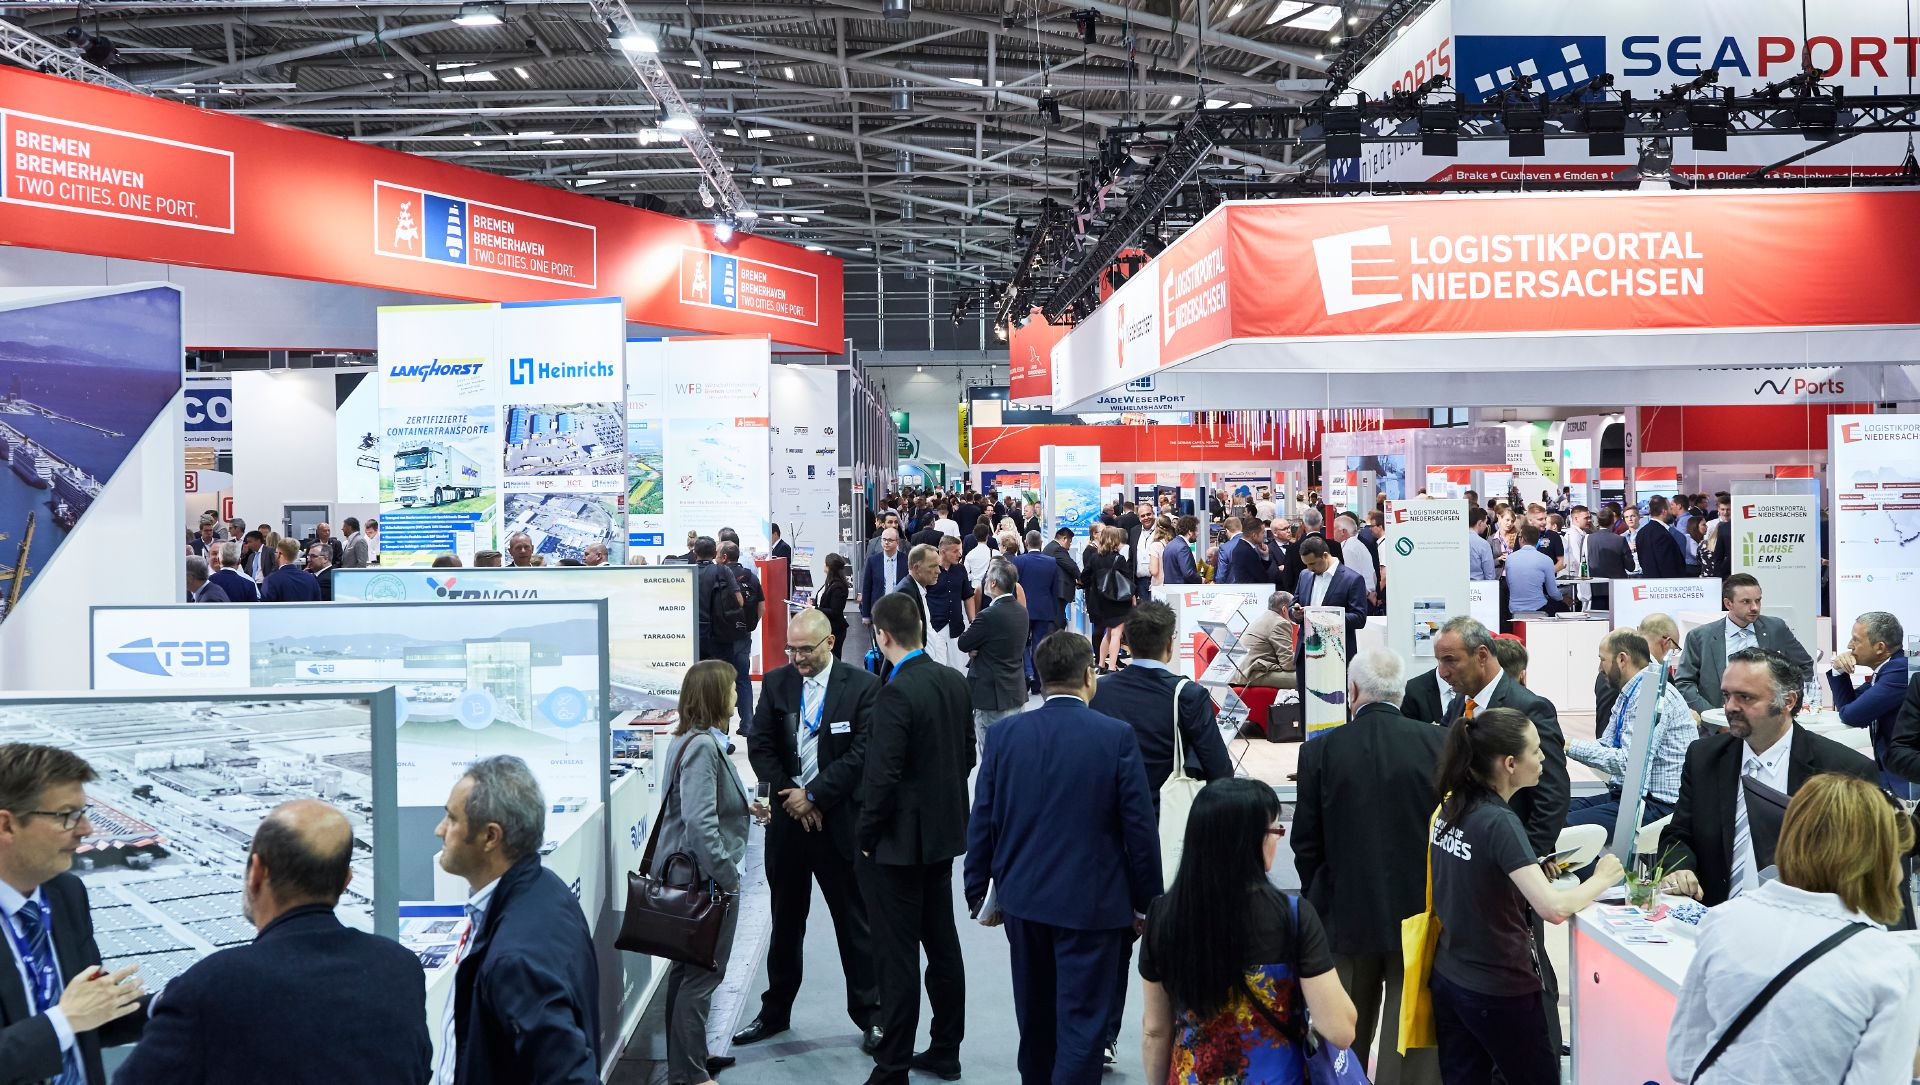 transport logistic Exhibition stand Seaports of Niedersachsen